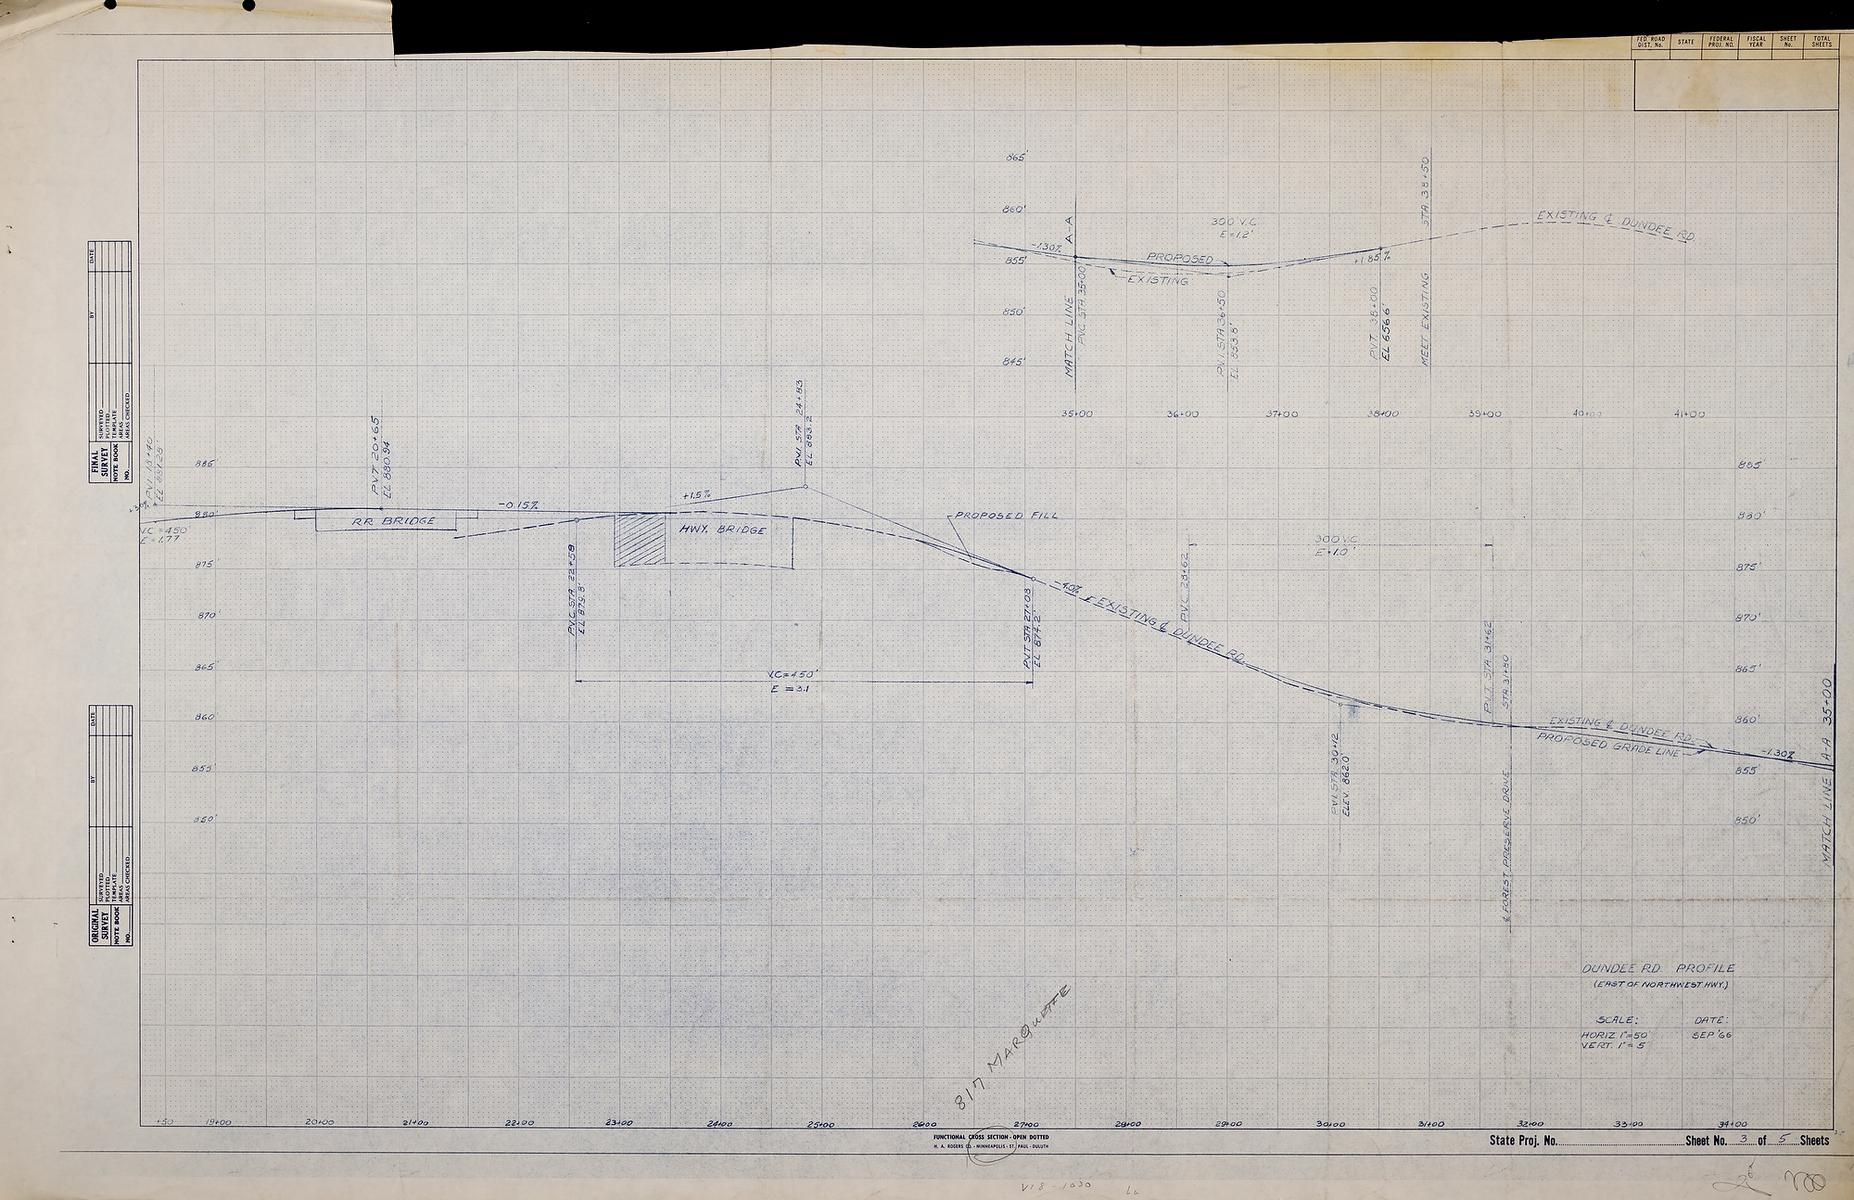 "Dundee Rd. Profile (East of Northwest Highway), scale: Horiz. 1""=50'; Vert. 1""=5'"